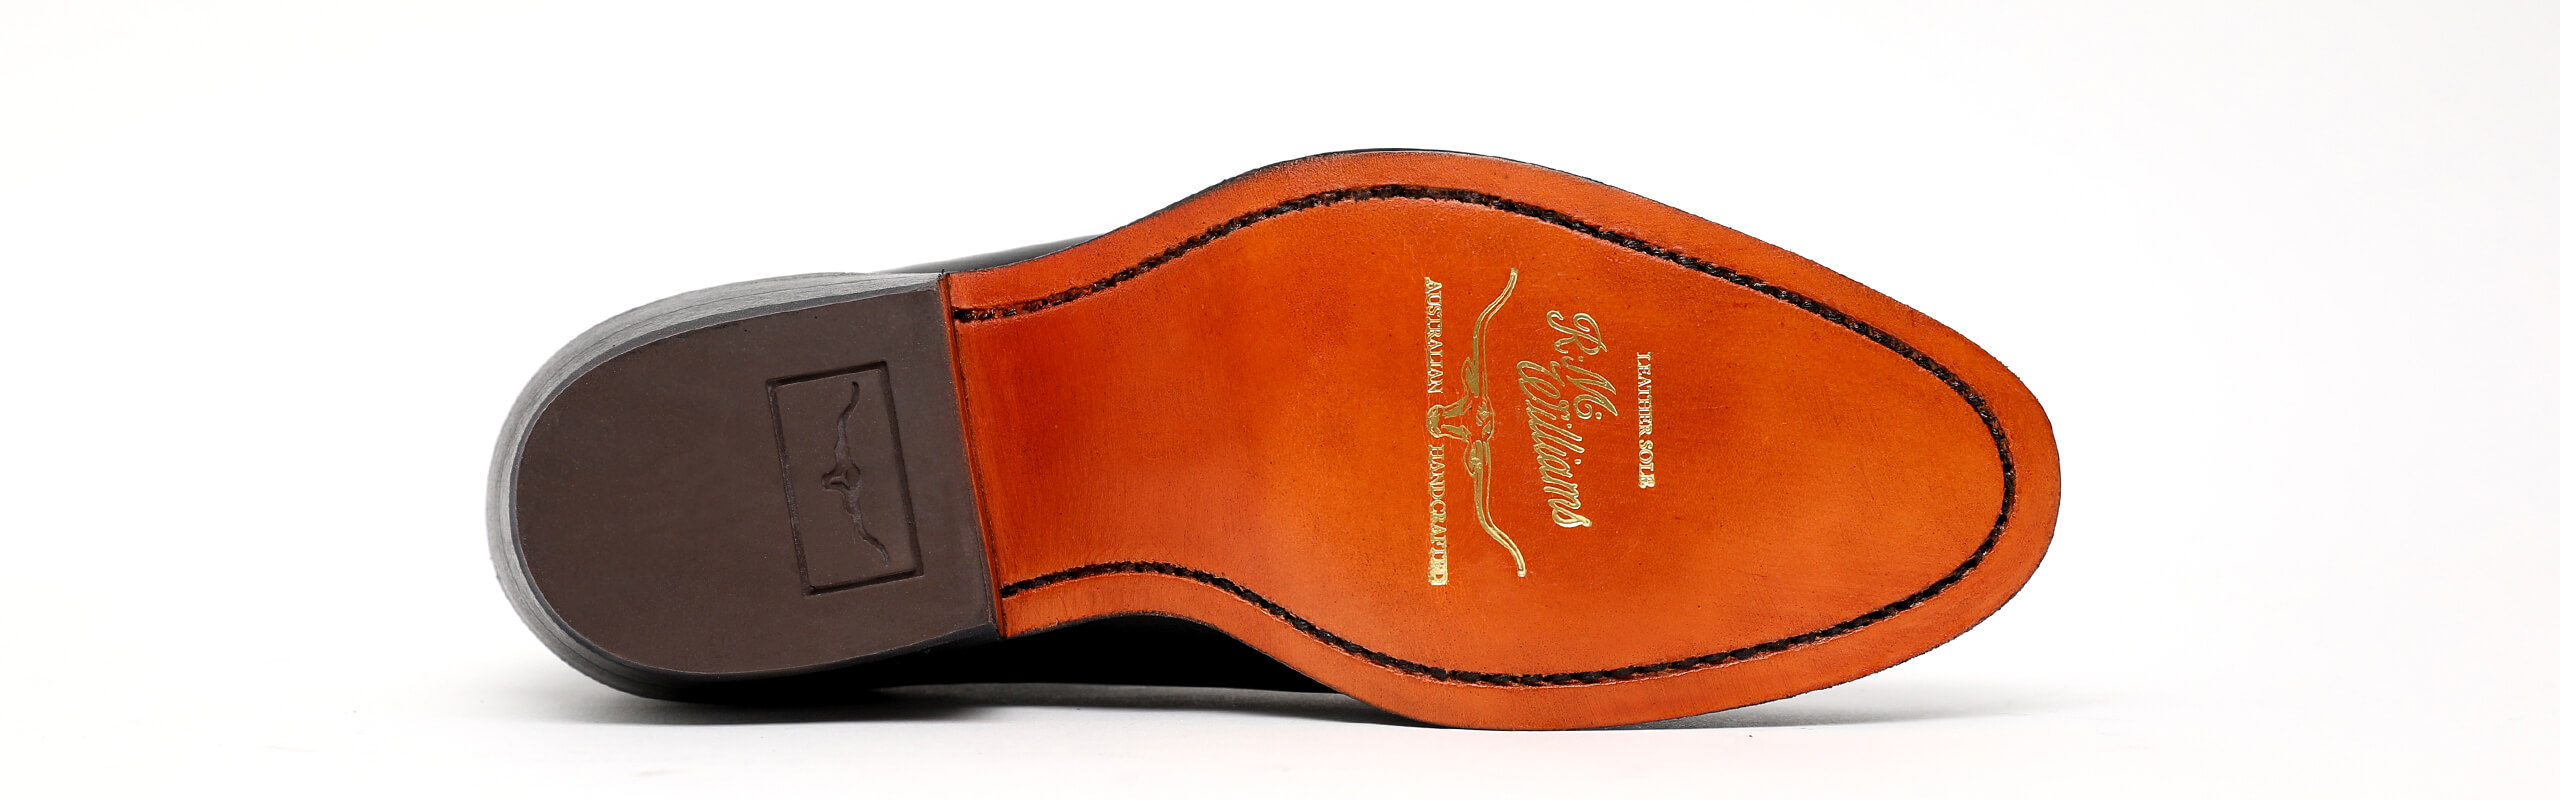 R.M.Williams Lady Yearling leather sole